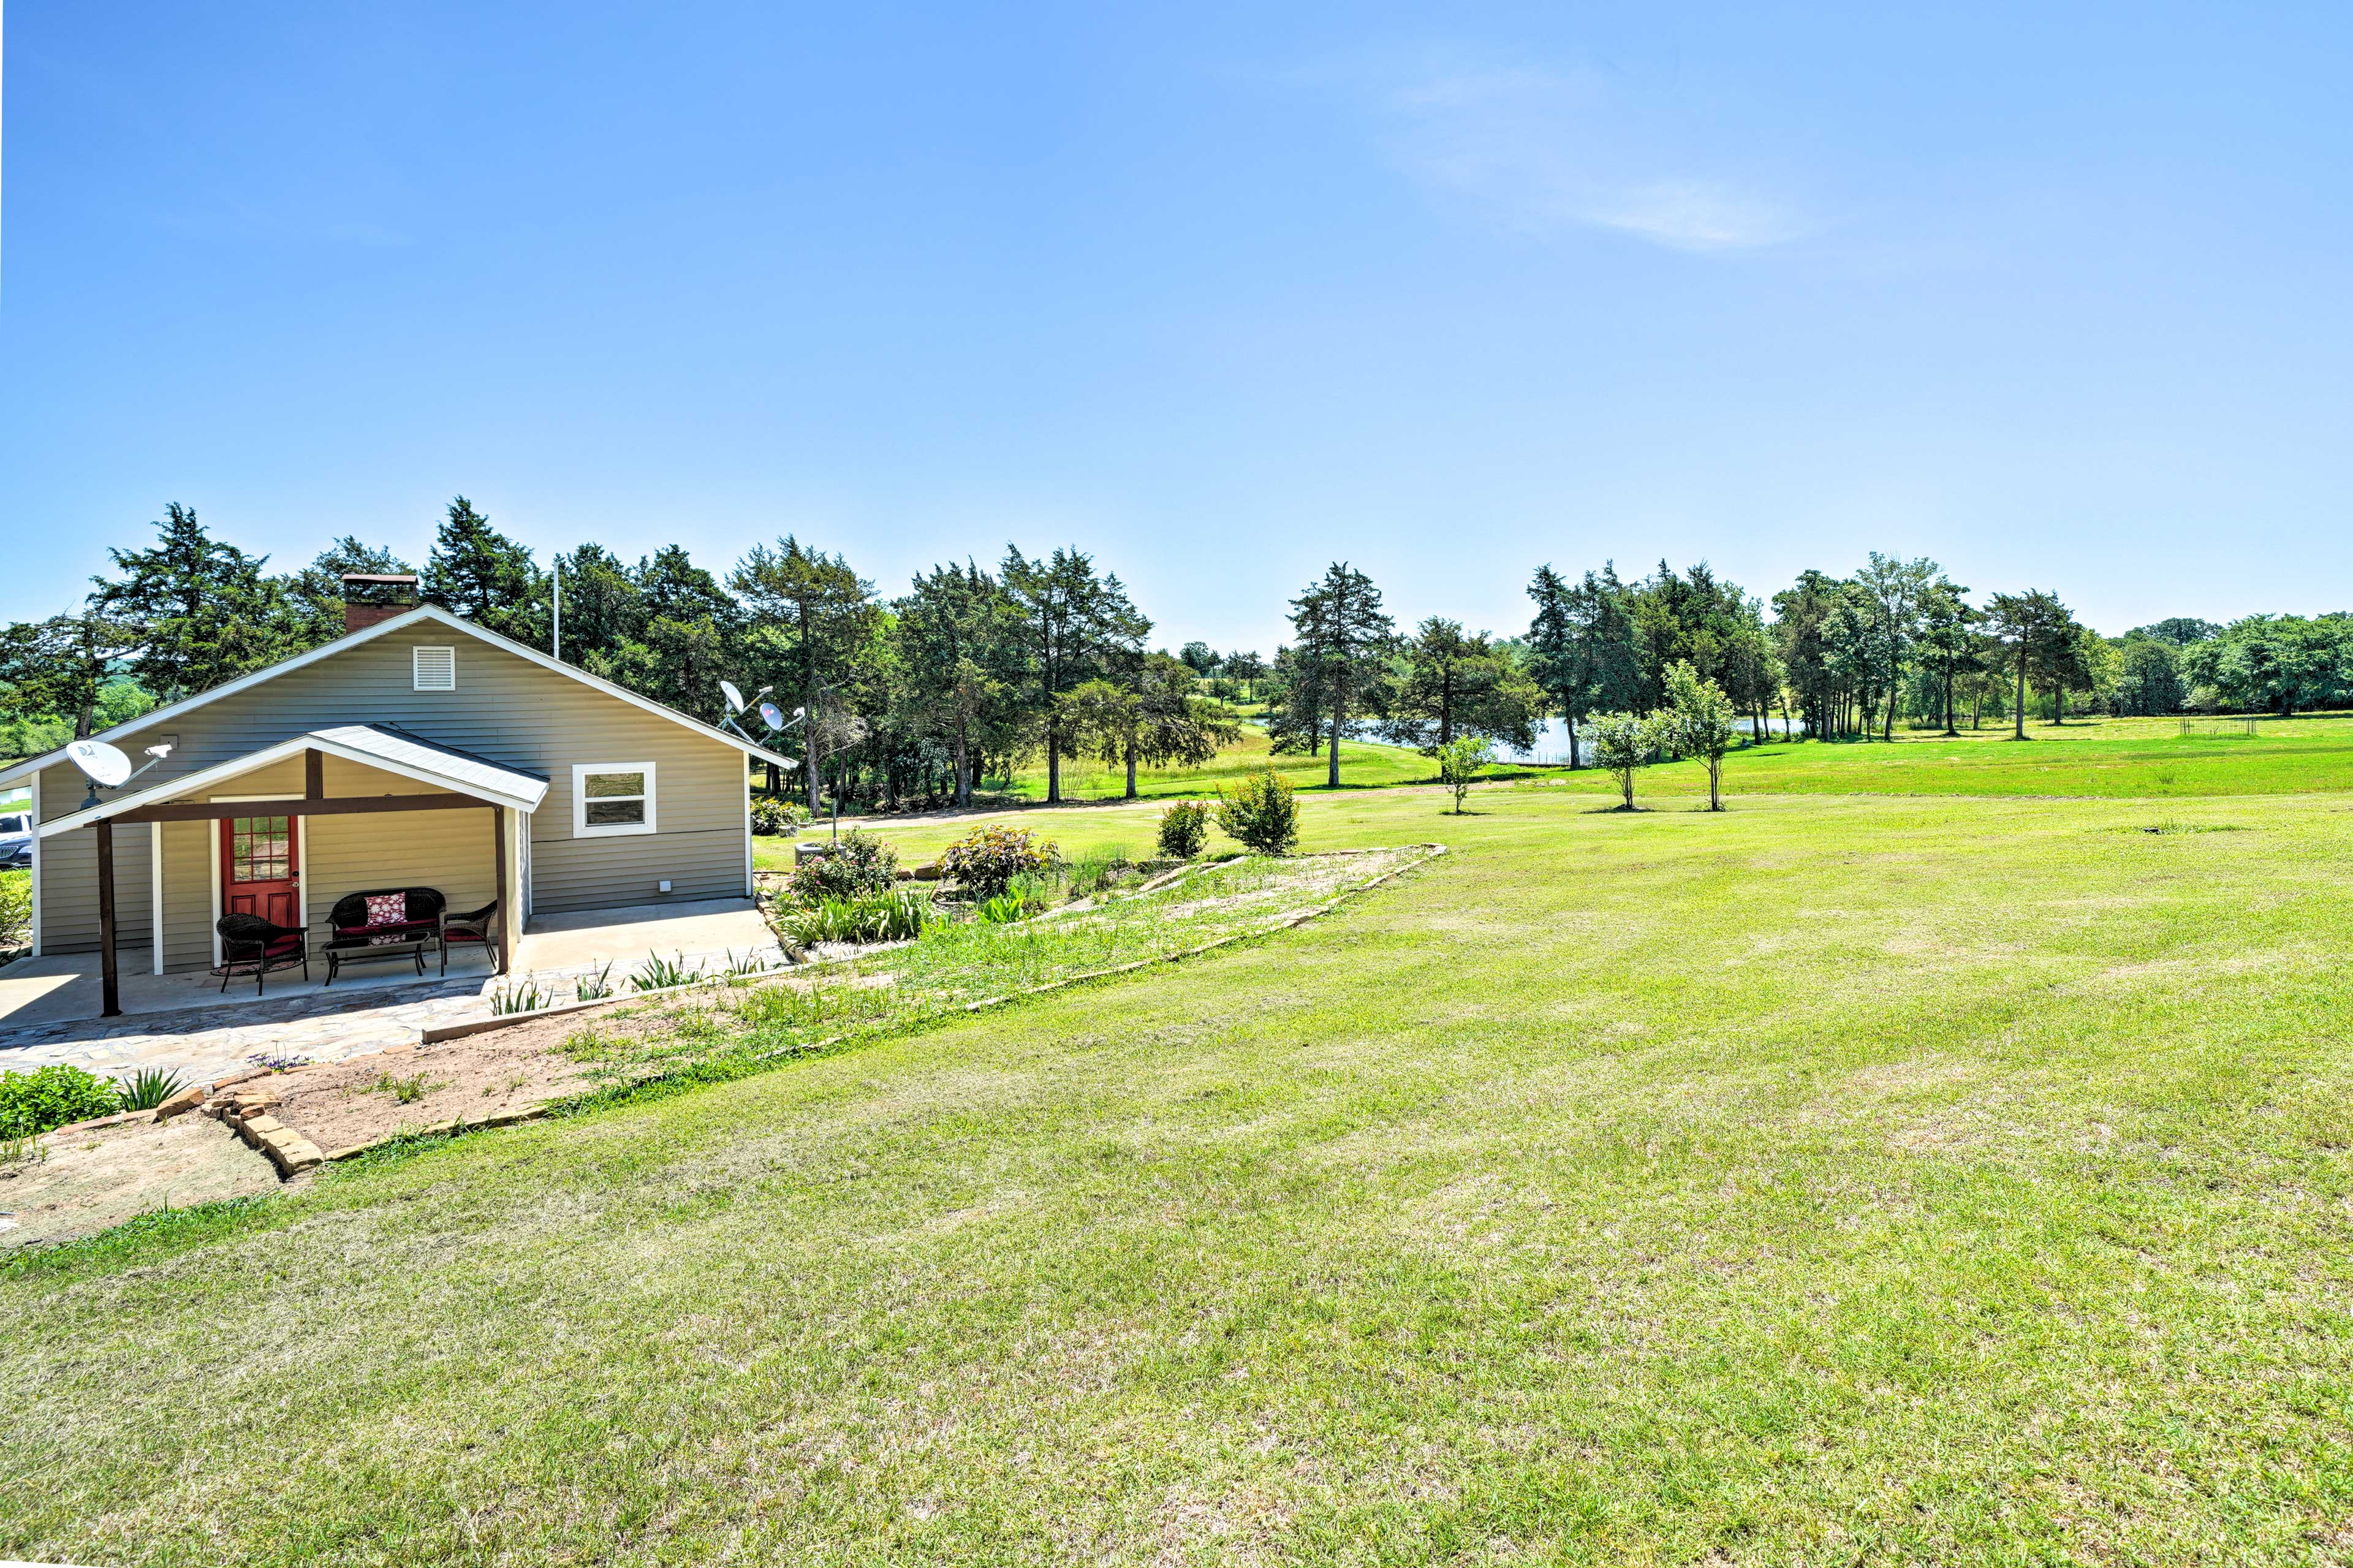 The property has 30 acres of wide open space and forested hills to explore.